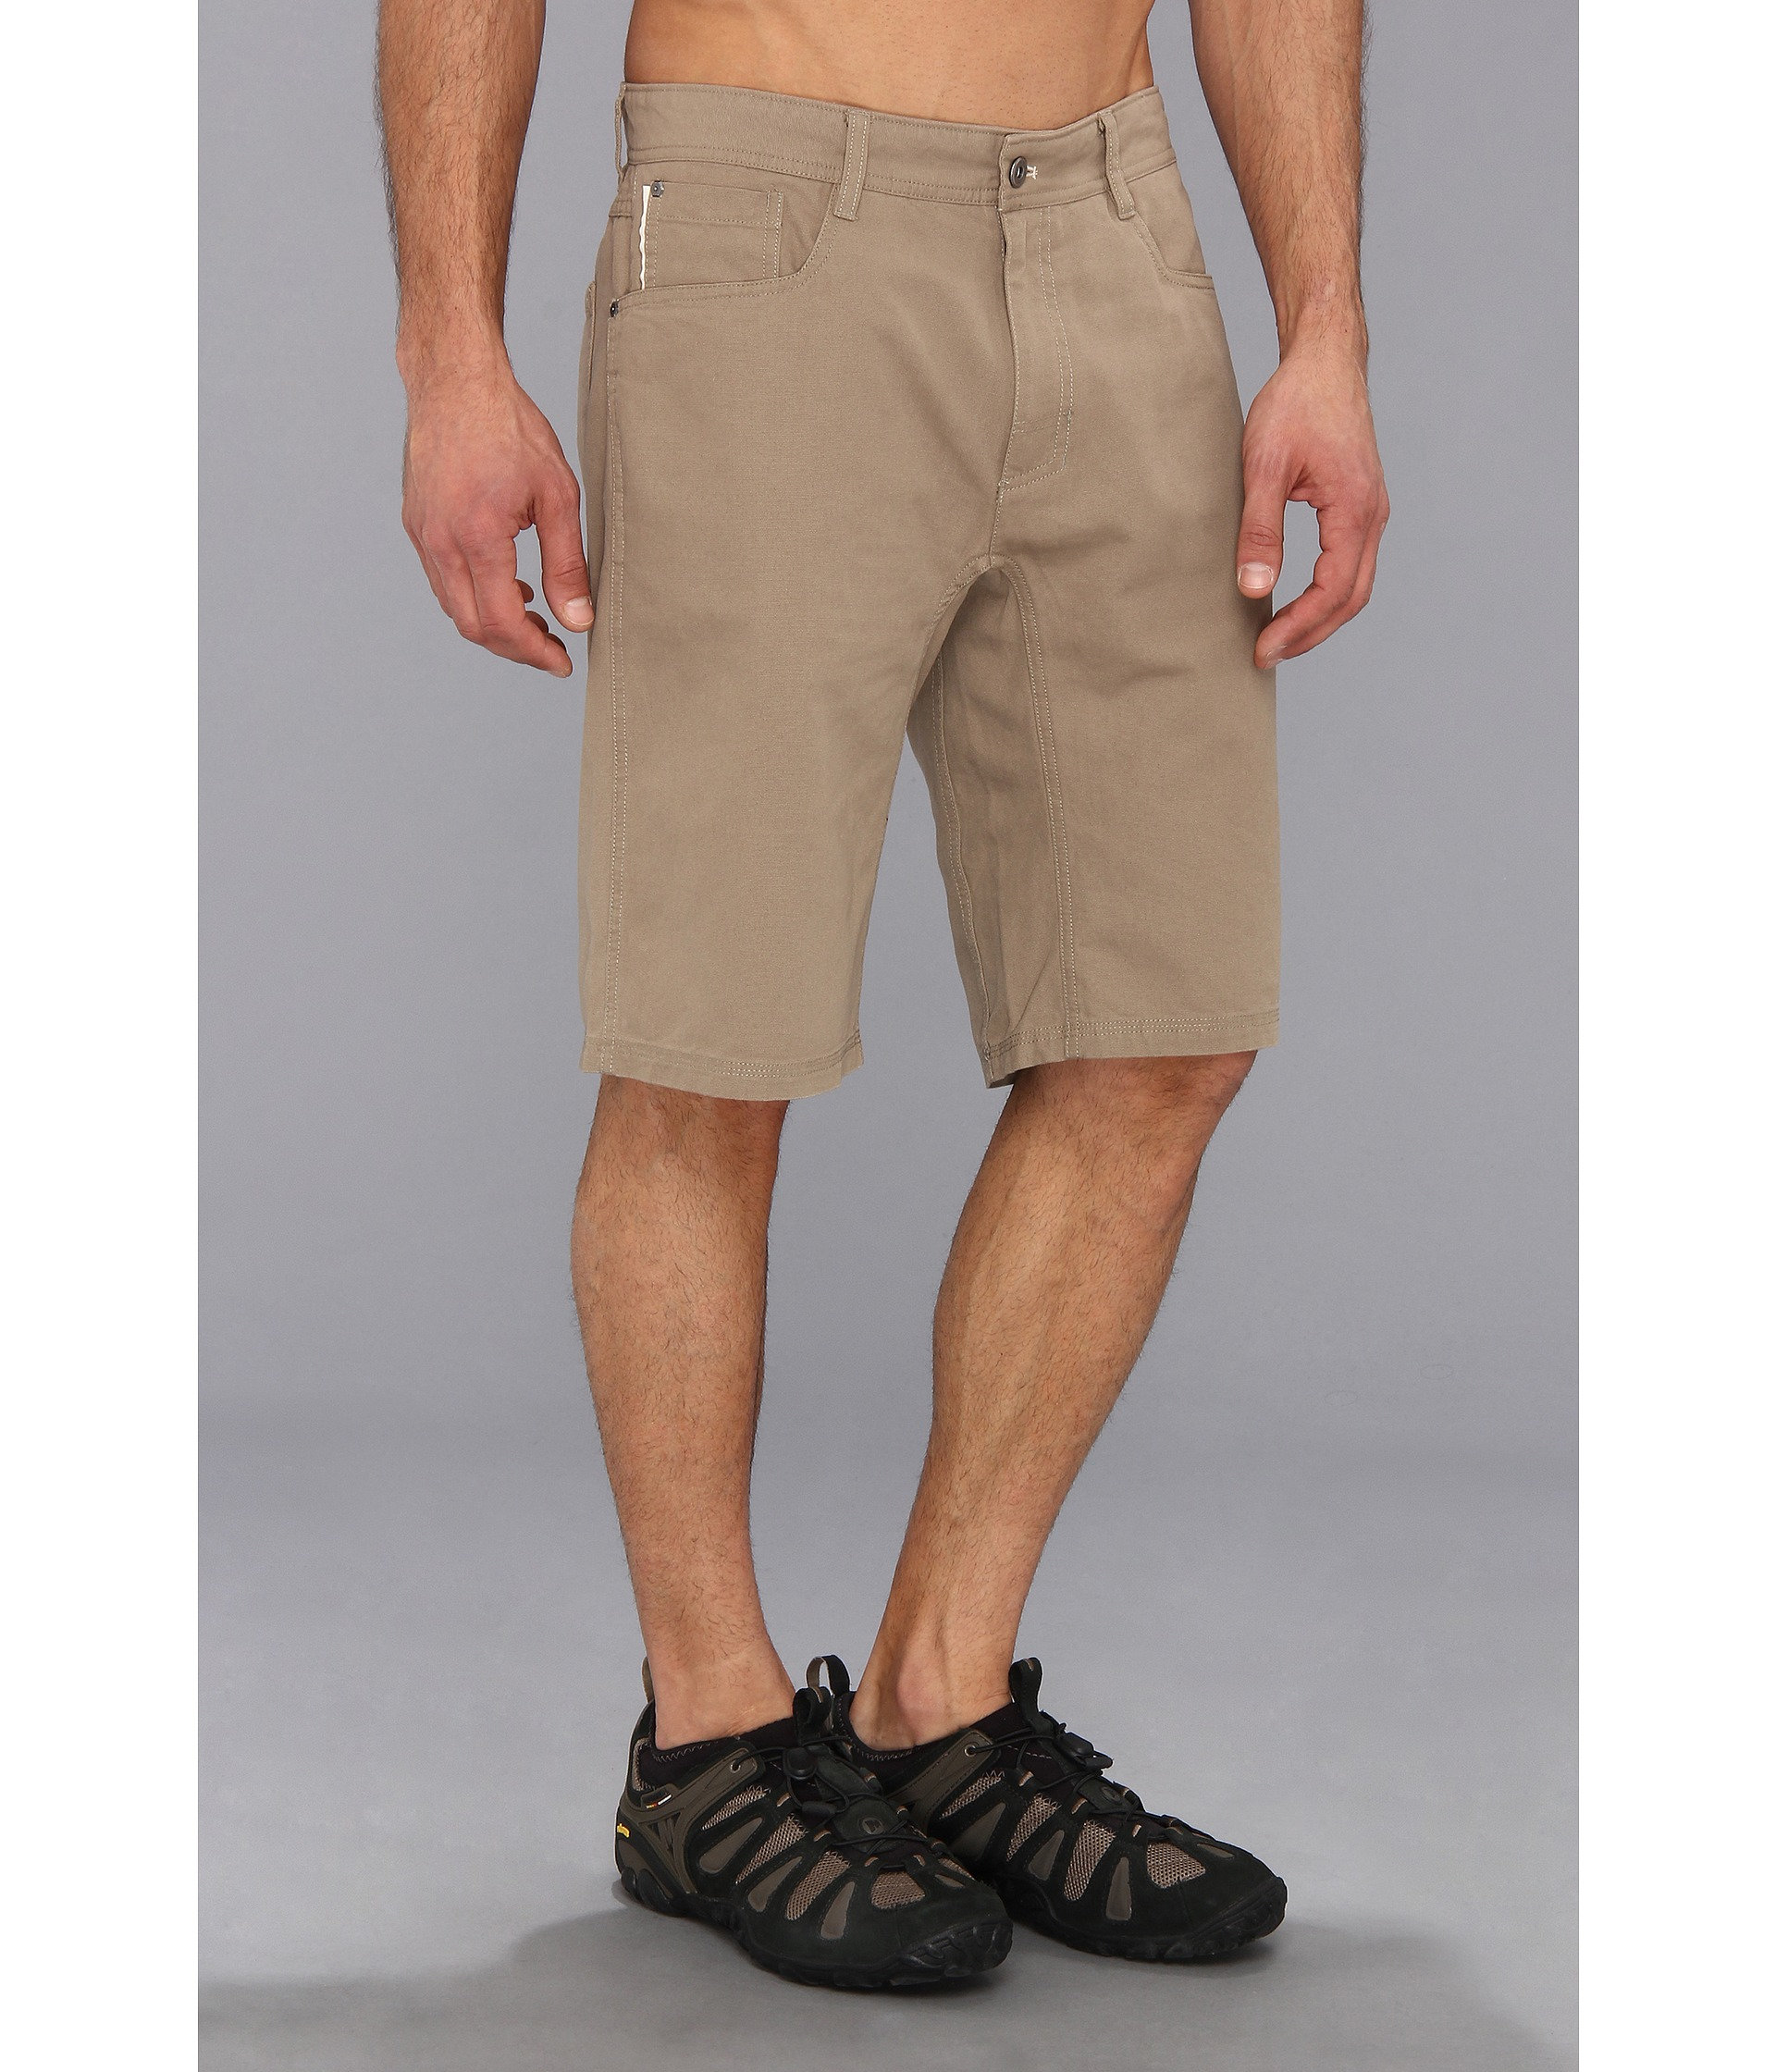 Mountain Hardwear Men's Hardwear AP Short JRI1MHHAPS